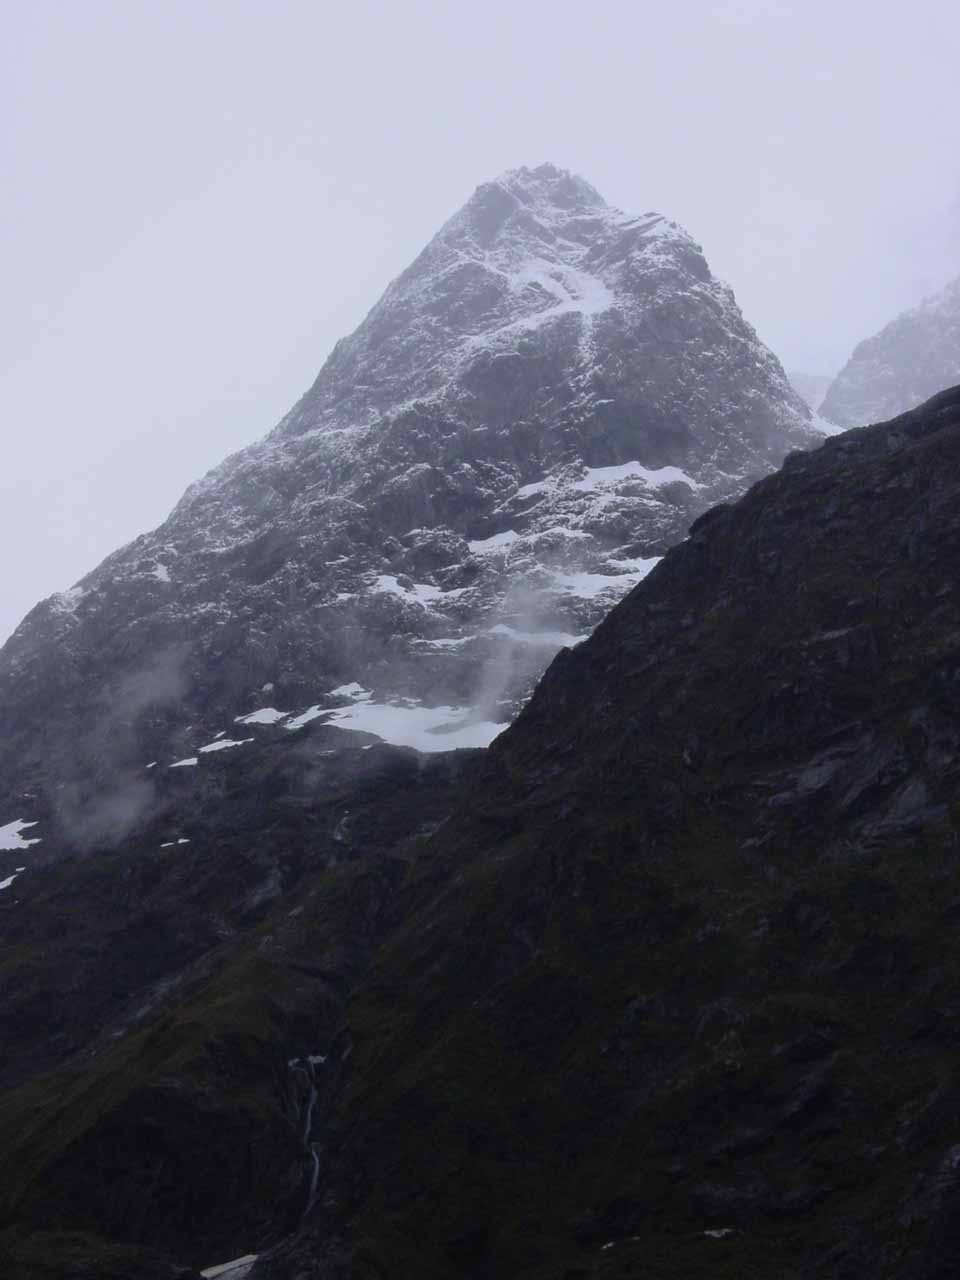 Looking up towards a tall mountain somewhere between Homer Tunnel and Christie Falls